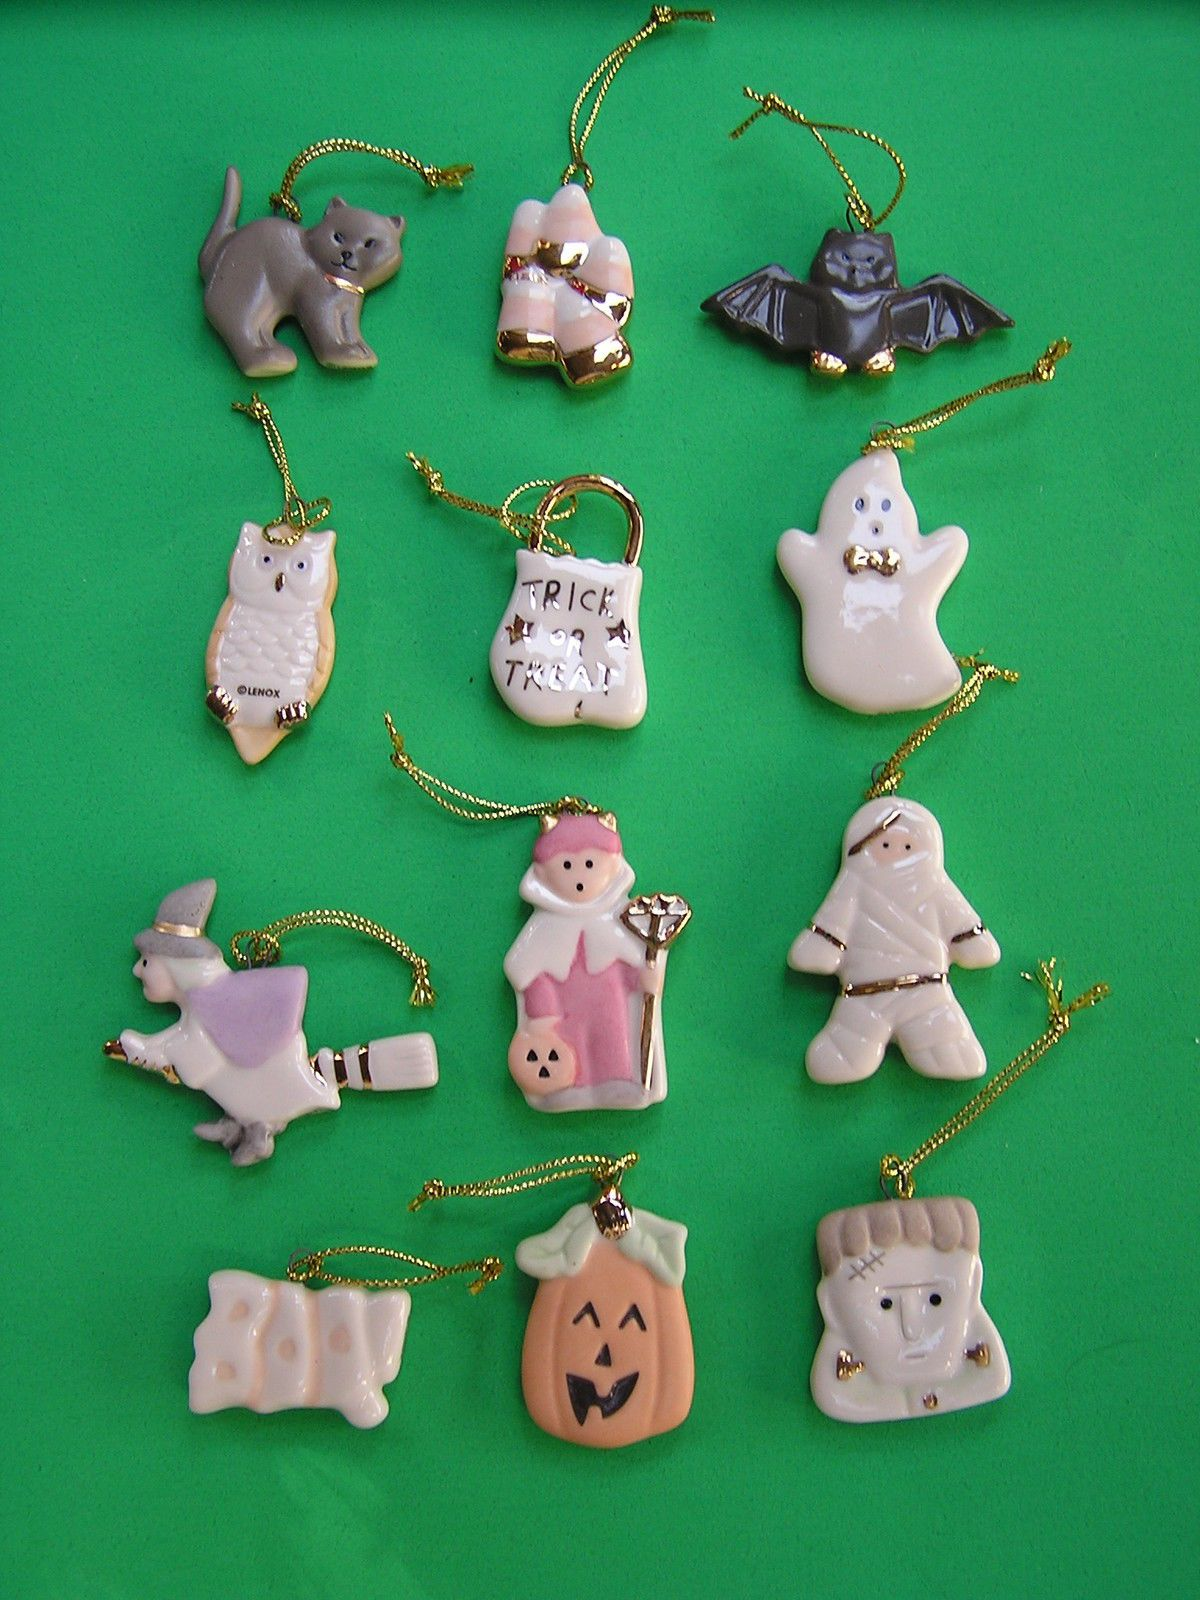 Details about LENOX HALLOWEEN TRICK or TREAT 12 miniature